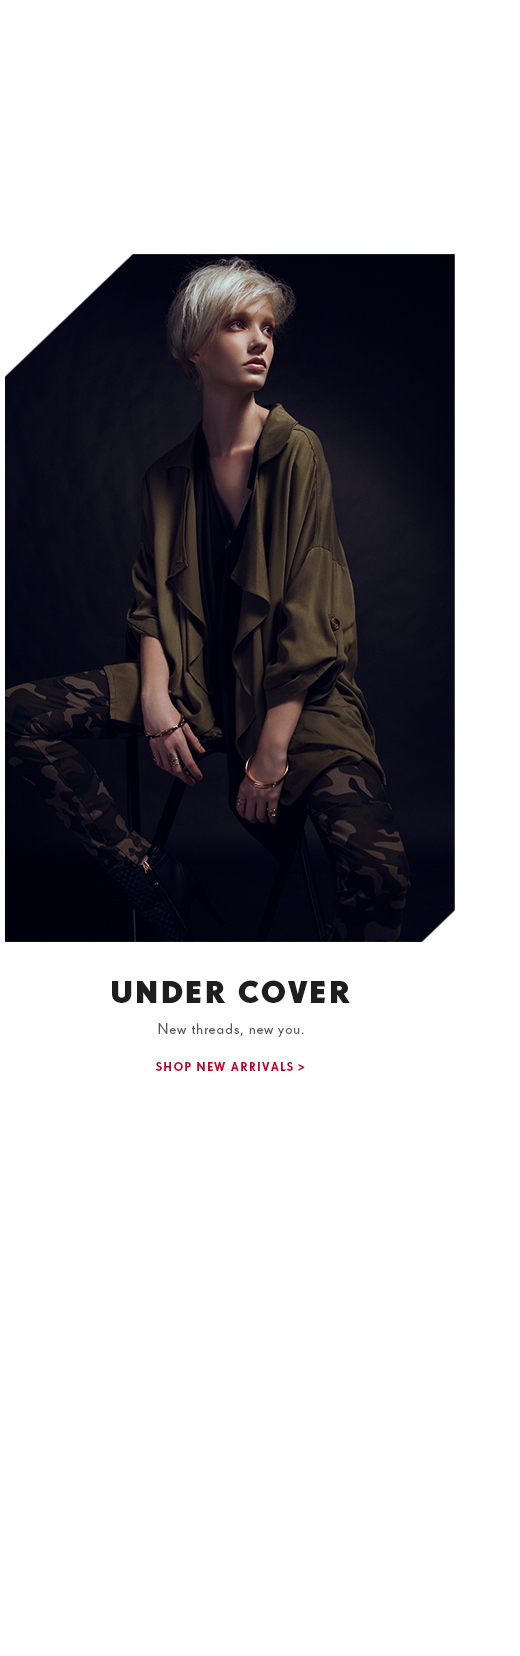 Under Cover. New threads, new you. SHop new arrivals.